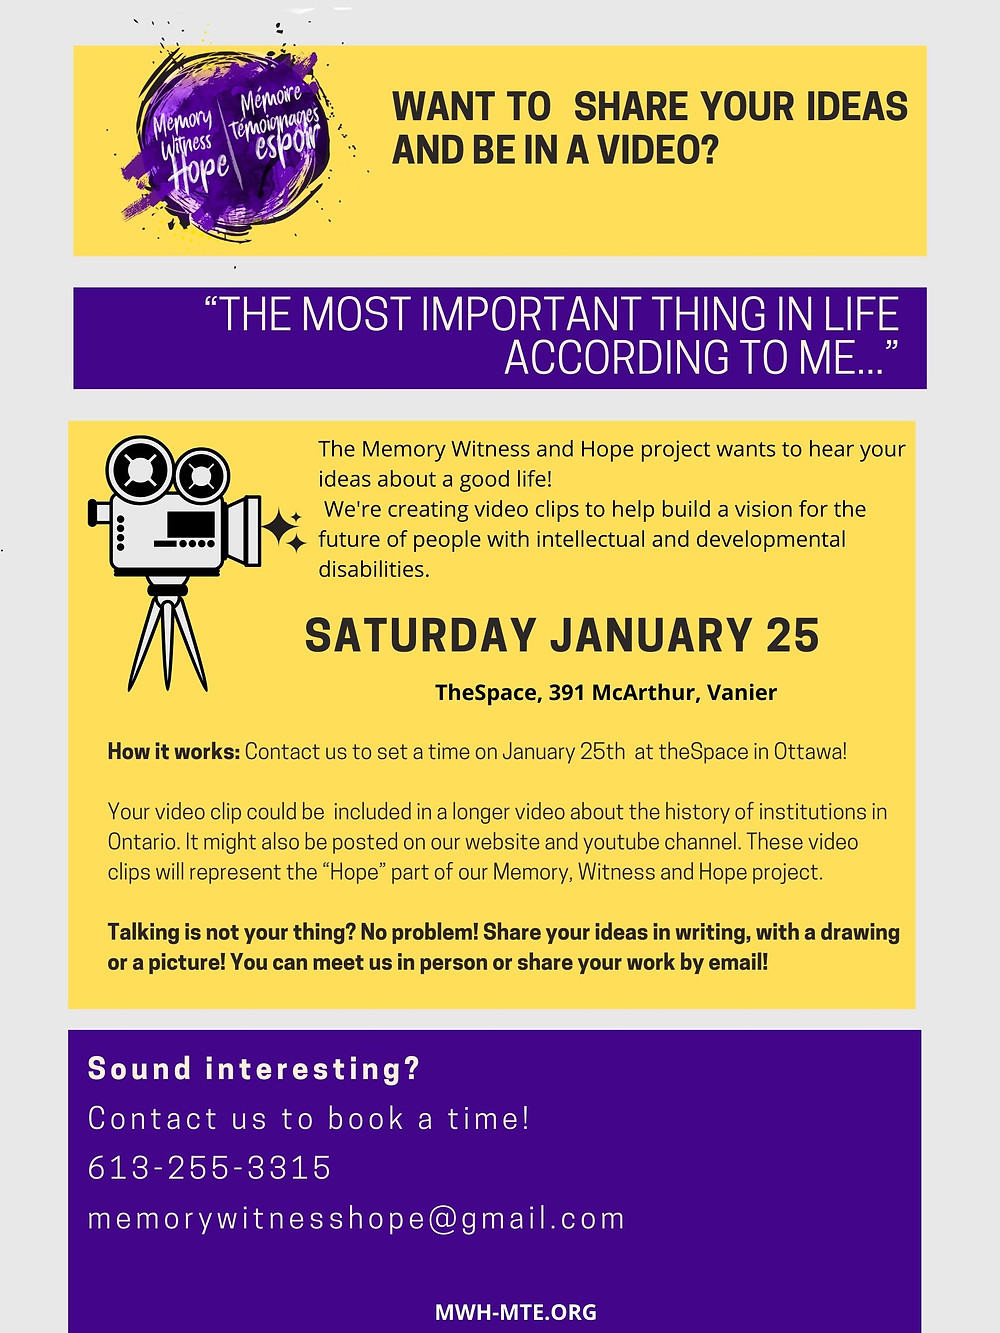 "Want to share your ideas and be in a video? ""THe most important thing in life according to me..."" Saturday January 25. TheSpace, 391 McArthur Avenue, Vanier. How it works: Contact us to set a time on January 25th at theSpace in Ottawa! Your video clip could be included in a longer video about the history of institutions in Ontario. It might also be posted on our website and youtube channel. These video clips will represent the ""Hope"" part of our Memory, Witness and Hope project. Talking is not your thing? No problem! Share your ideas in writing, with a drawing or a picture! You can meet us in person or share your work by email! So u n d i n t e r e s t i n g ? Co n t a c t u s t o b o o k a t ime ! 613-255-3315 memo r ywi t n e s s h o p e@gma i l . c om. MWH-MTE.ORG"